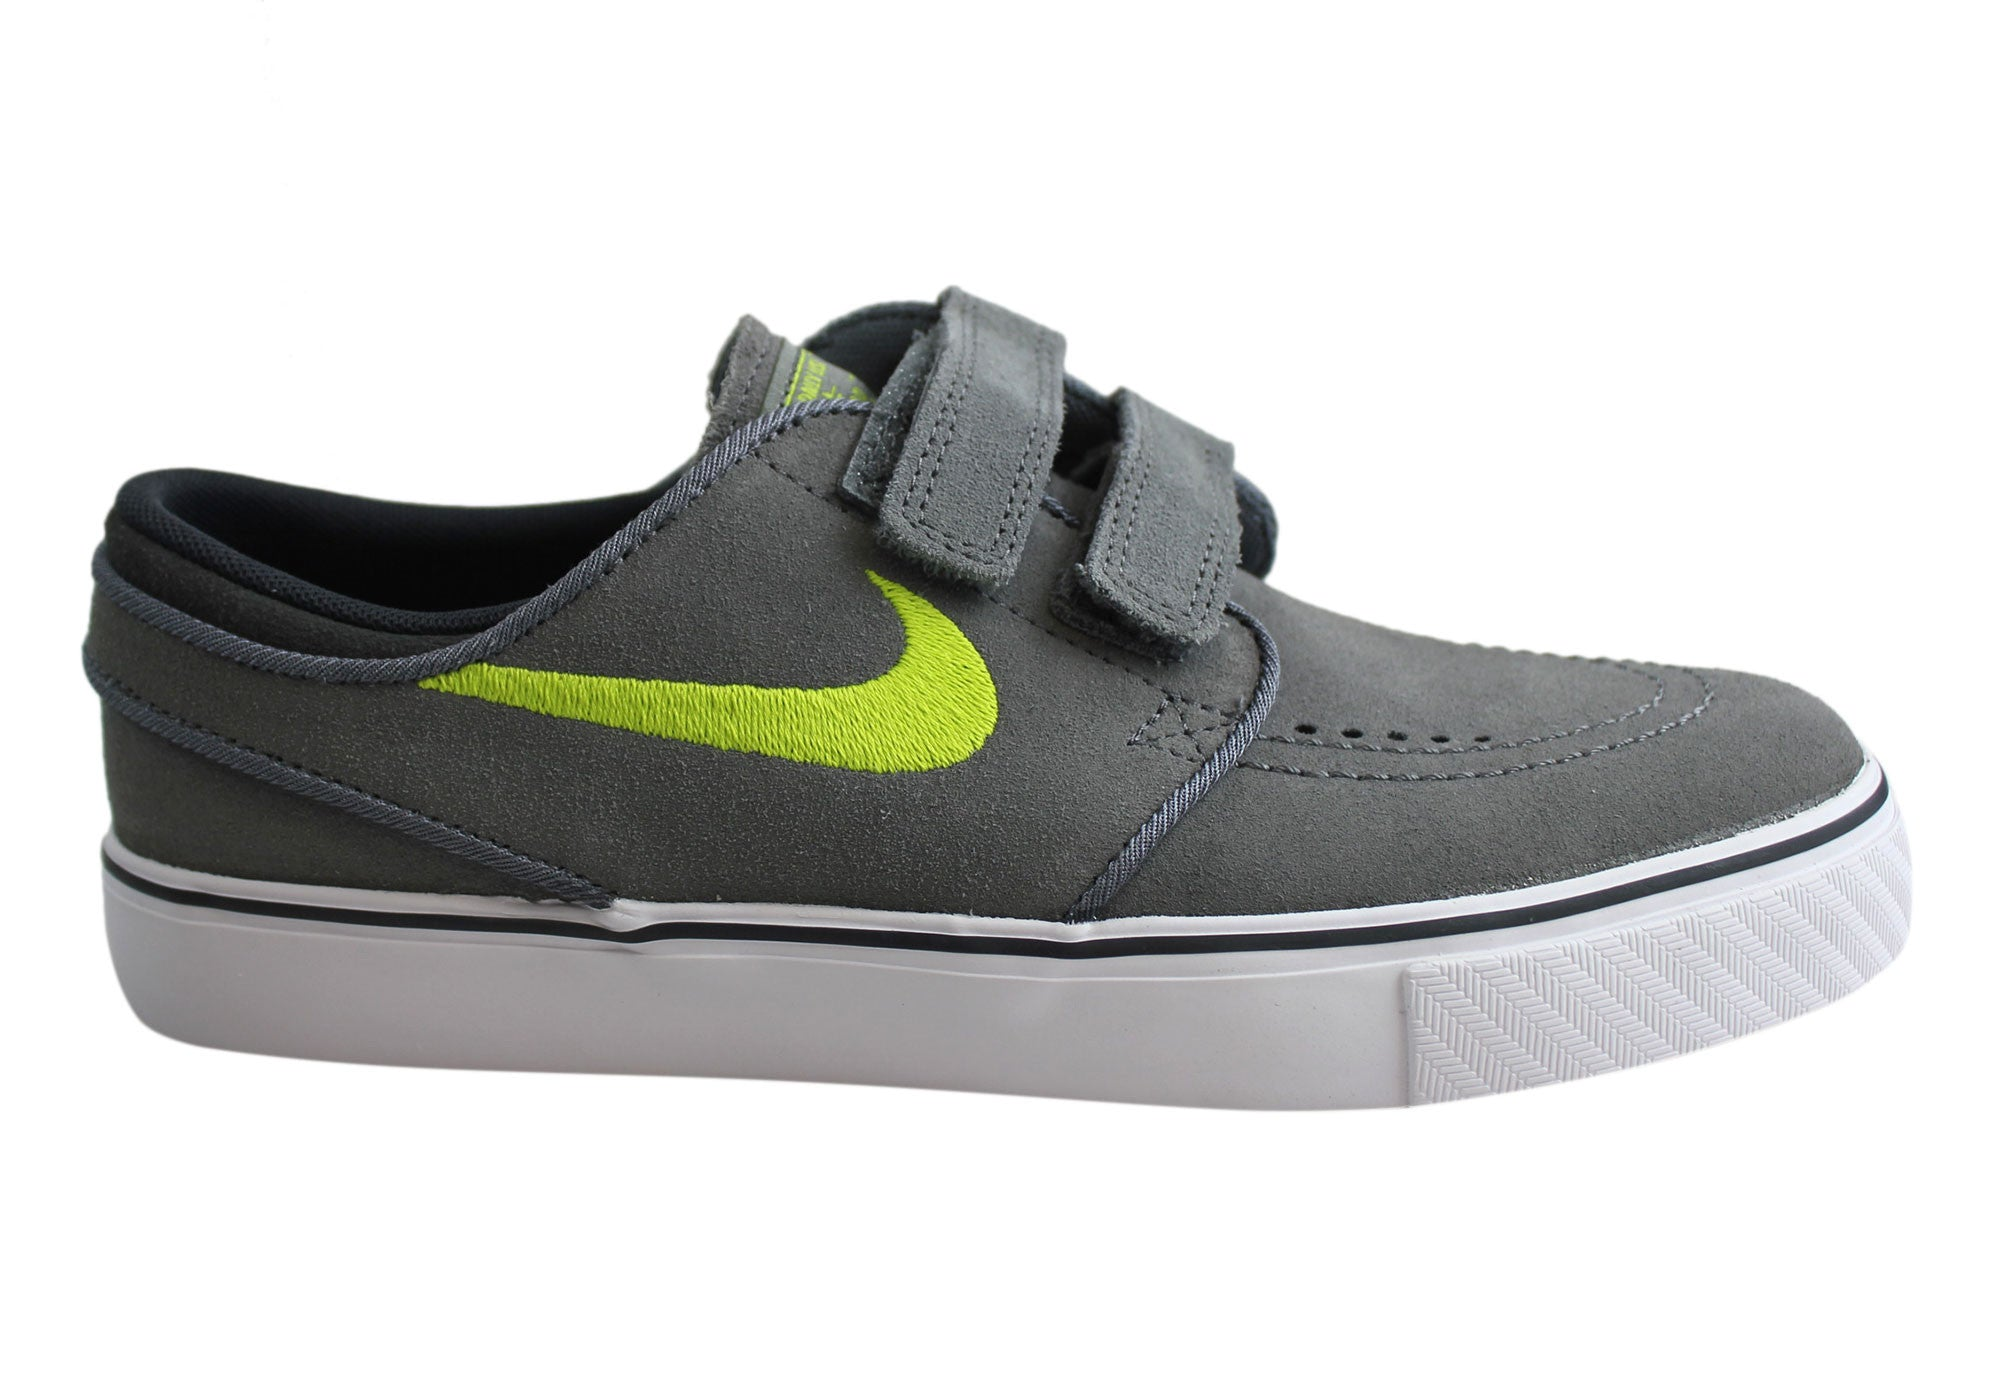 72ac39fe3b51 Details about New Nike Sb Kids Boys Stefan Janoski Ac Suede Adjustable  Strap Shoes